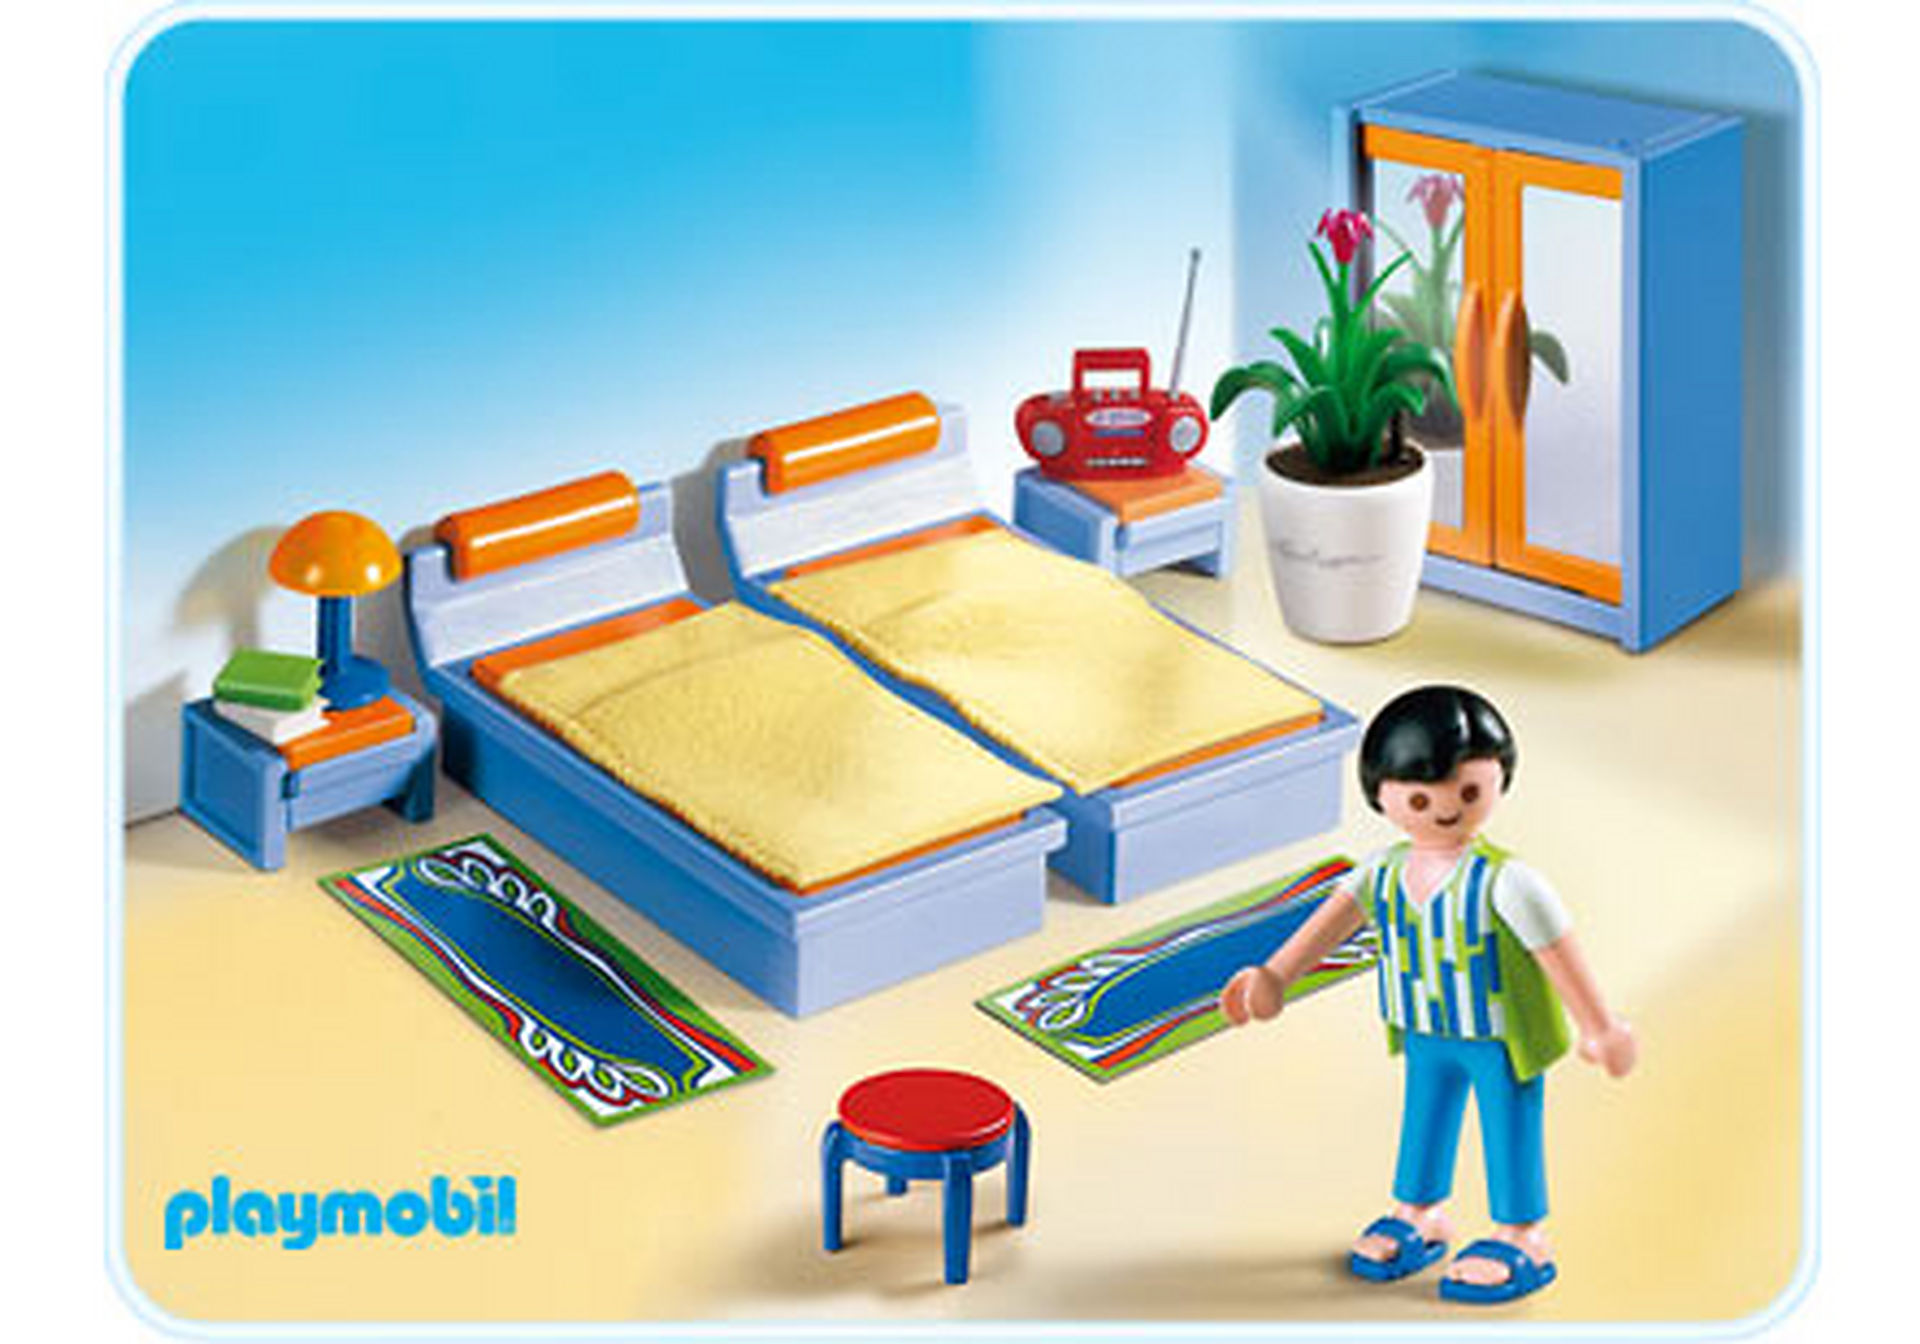 http://media.playmobil.com/i/playmobil/4284-A_product_detail/Modernes Elternschlafzimmer